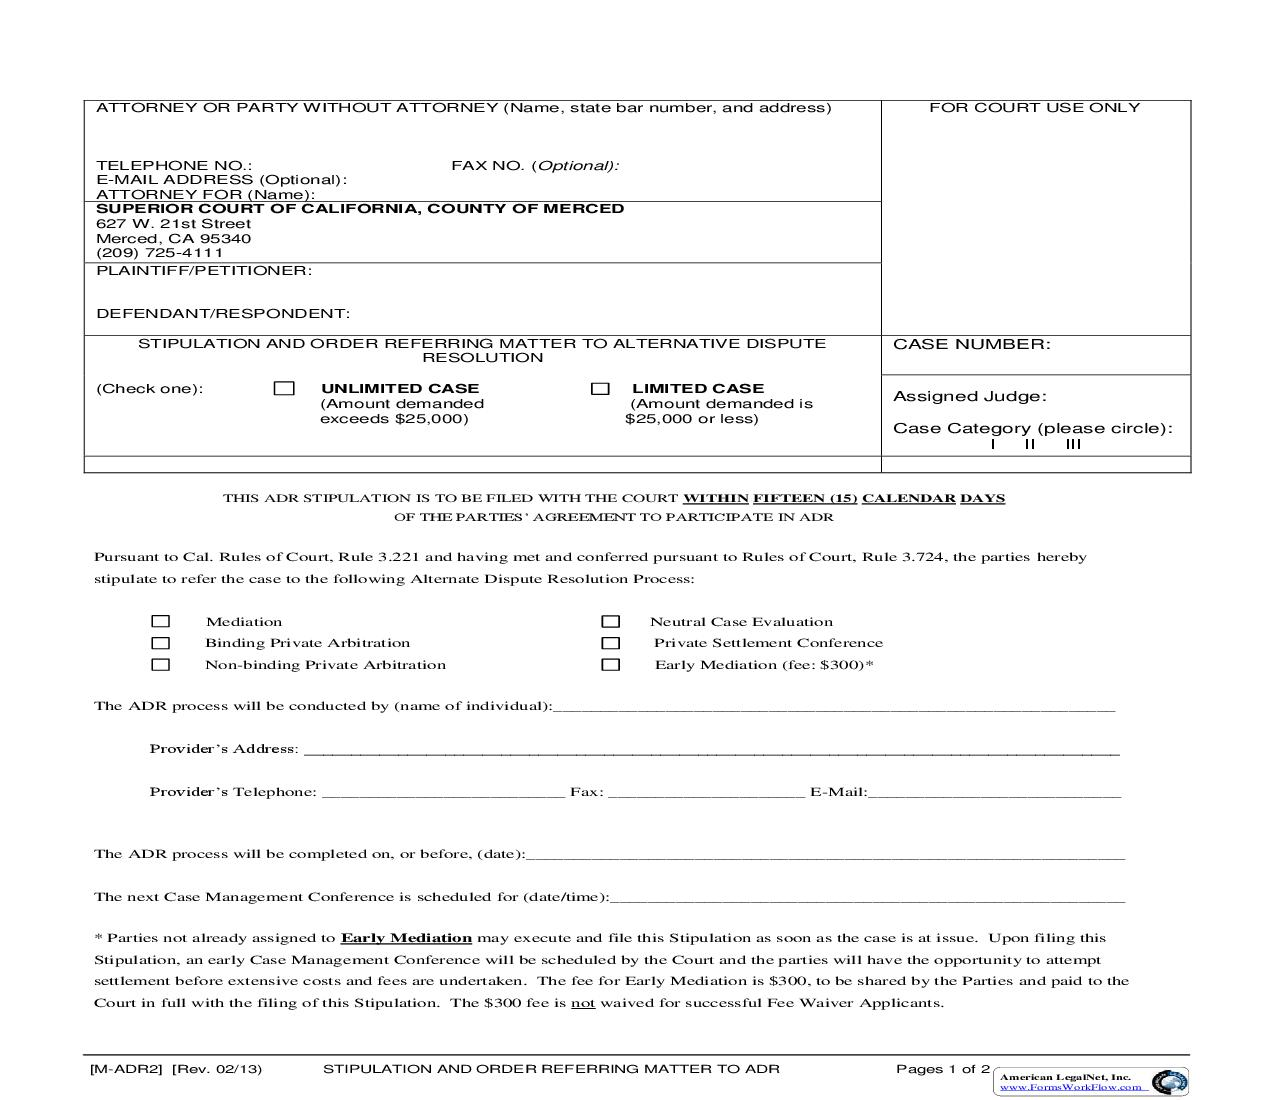 Stipulation And Order Referring Matter To ADR {M-ADR2} | Pdf Fpdf Doc Docx | California